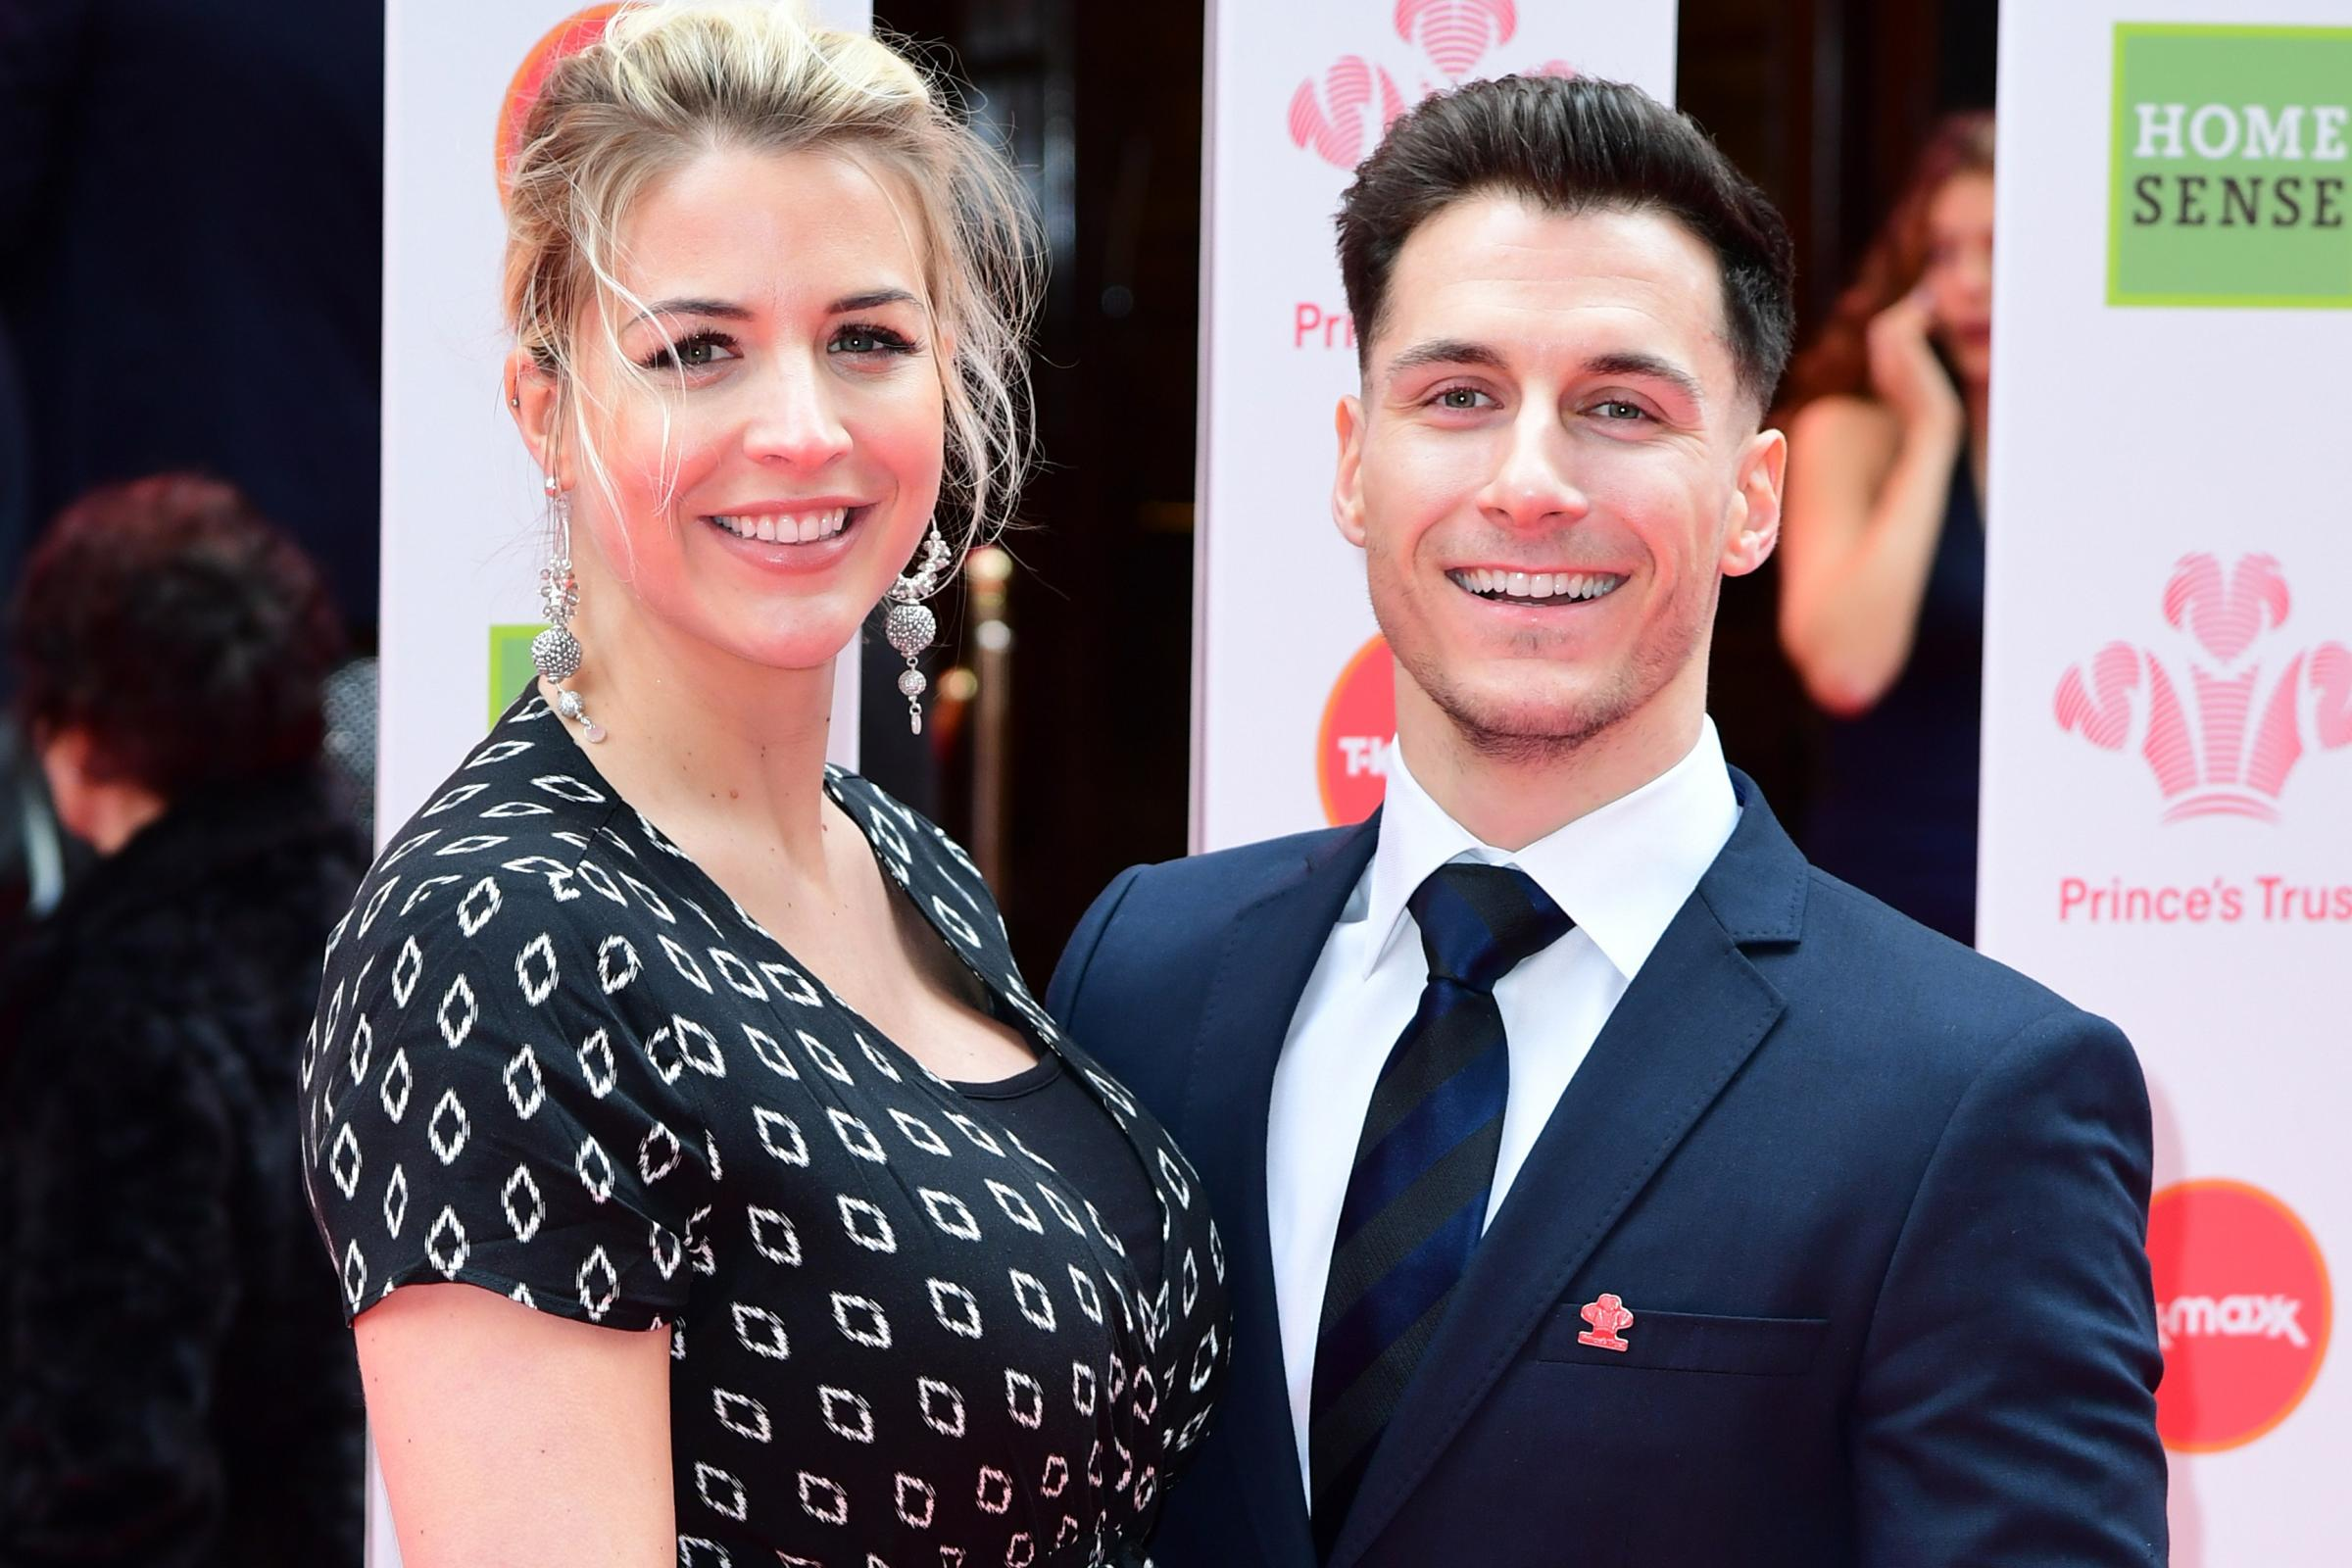 Gemma Atkinson and Gorka Marquez at the Prince's Trust Awards 2019